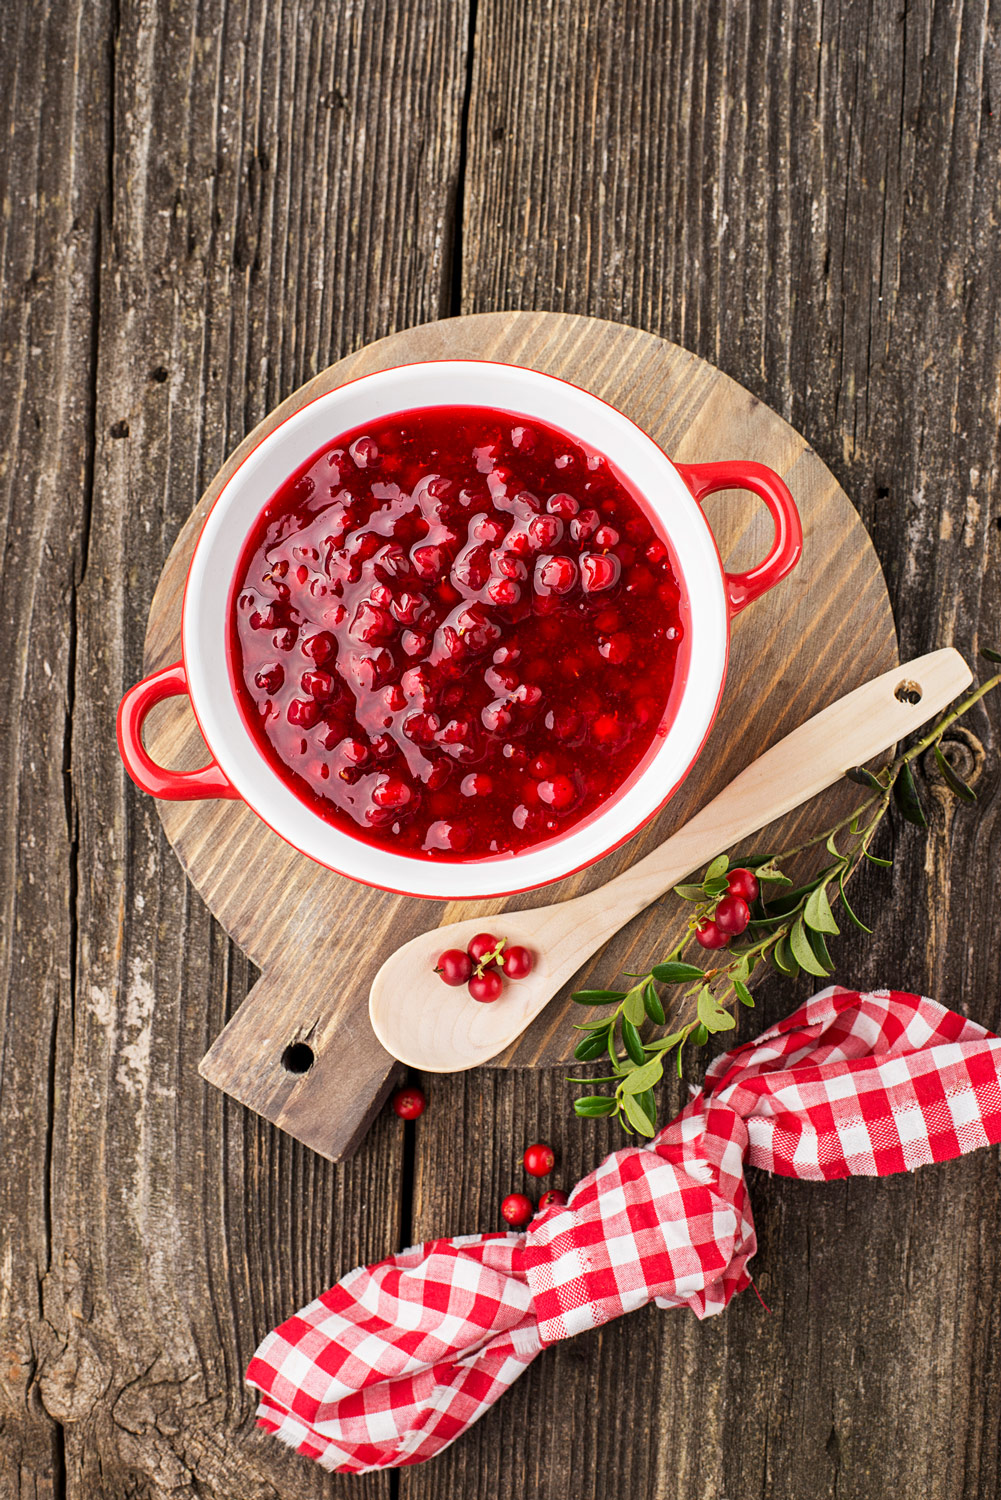 Honey Cranberry relish on cutting board on wood talbe with red gingham napkin and wooden serving spoon with cranberry garnish and sprig of holly